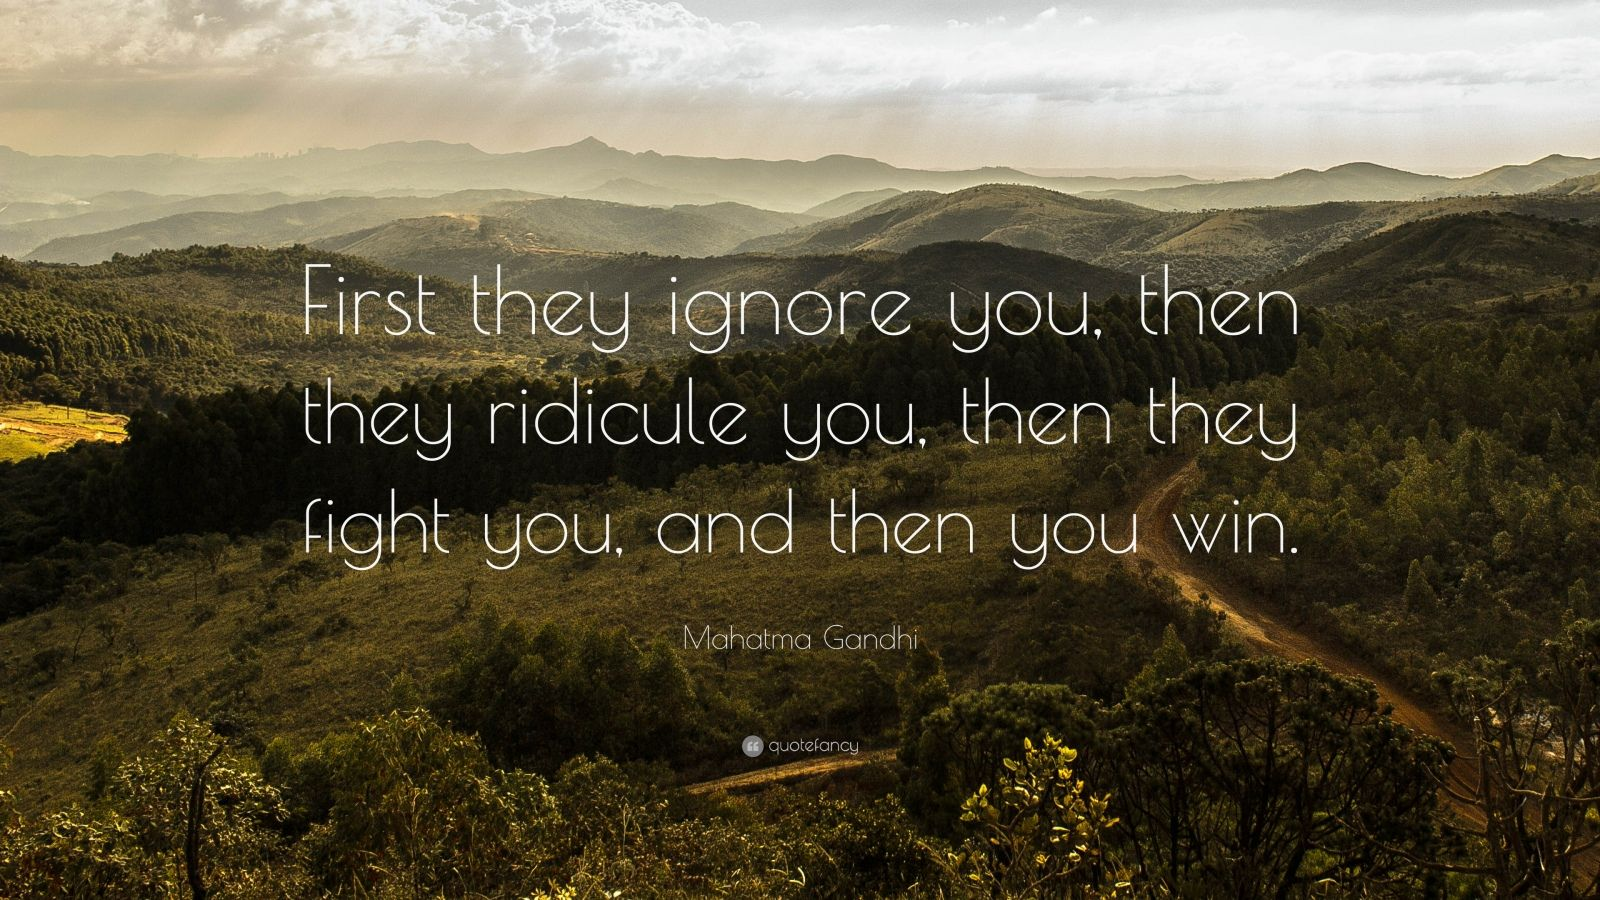 """Mahatma Gandhi Quote: """"First they ignore you, then they ridicule you, then they fight you, and then you win."""""""